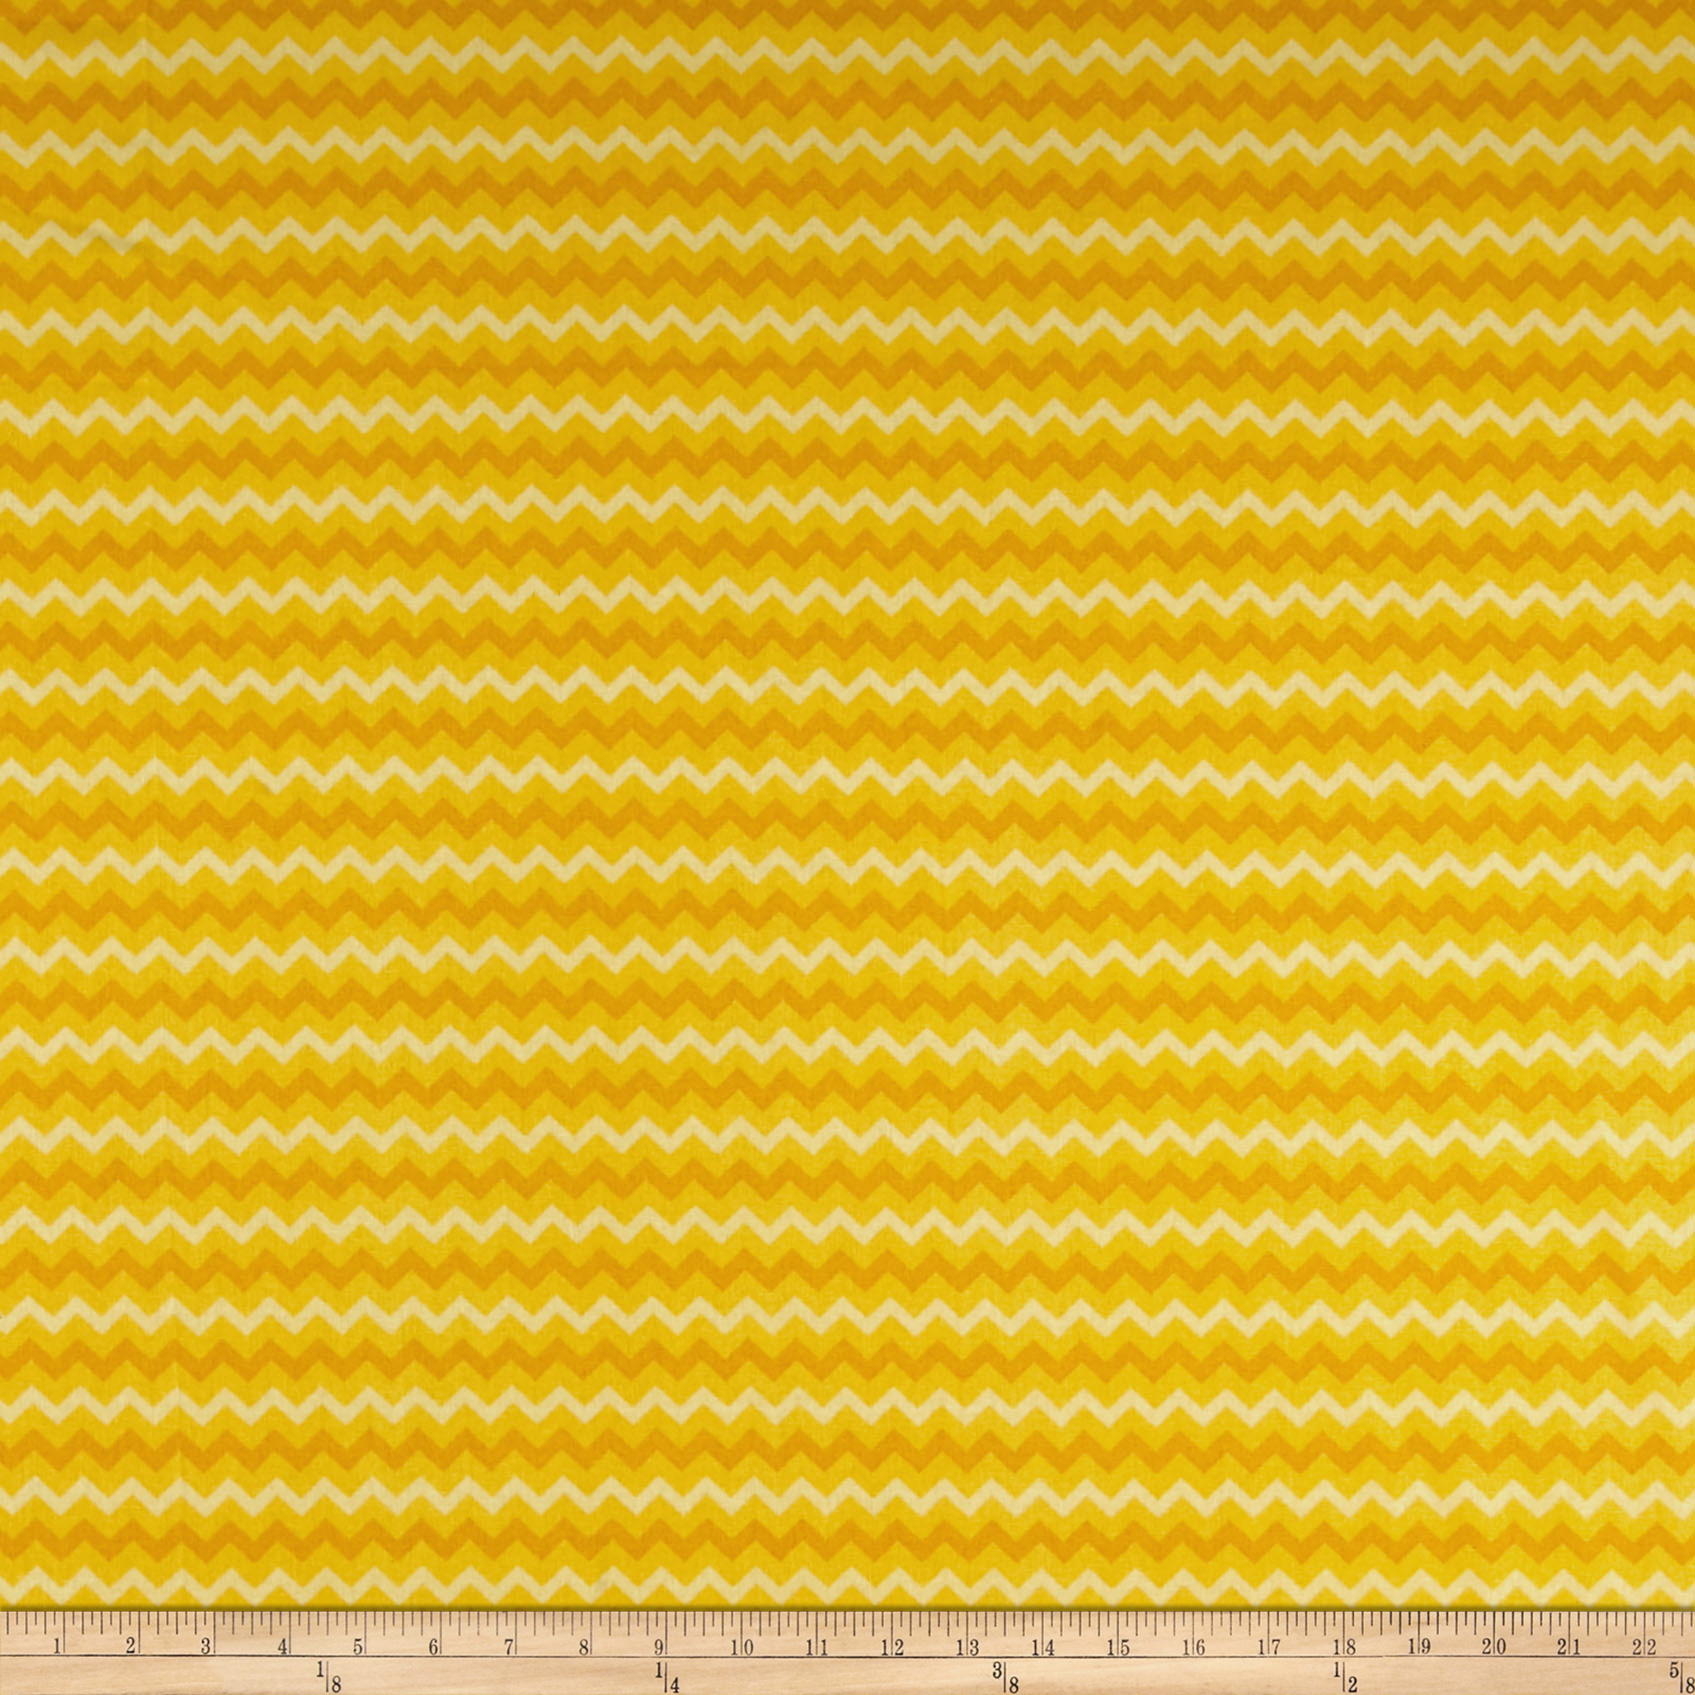 Springs Creative Tonal Chevron Golden Yellow Fabric